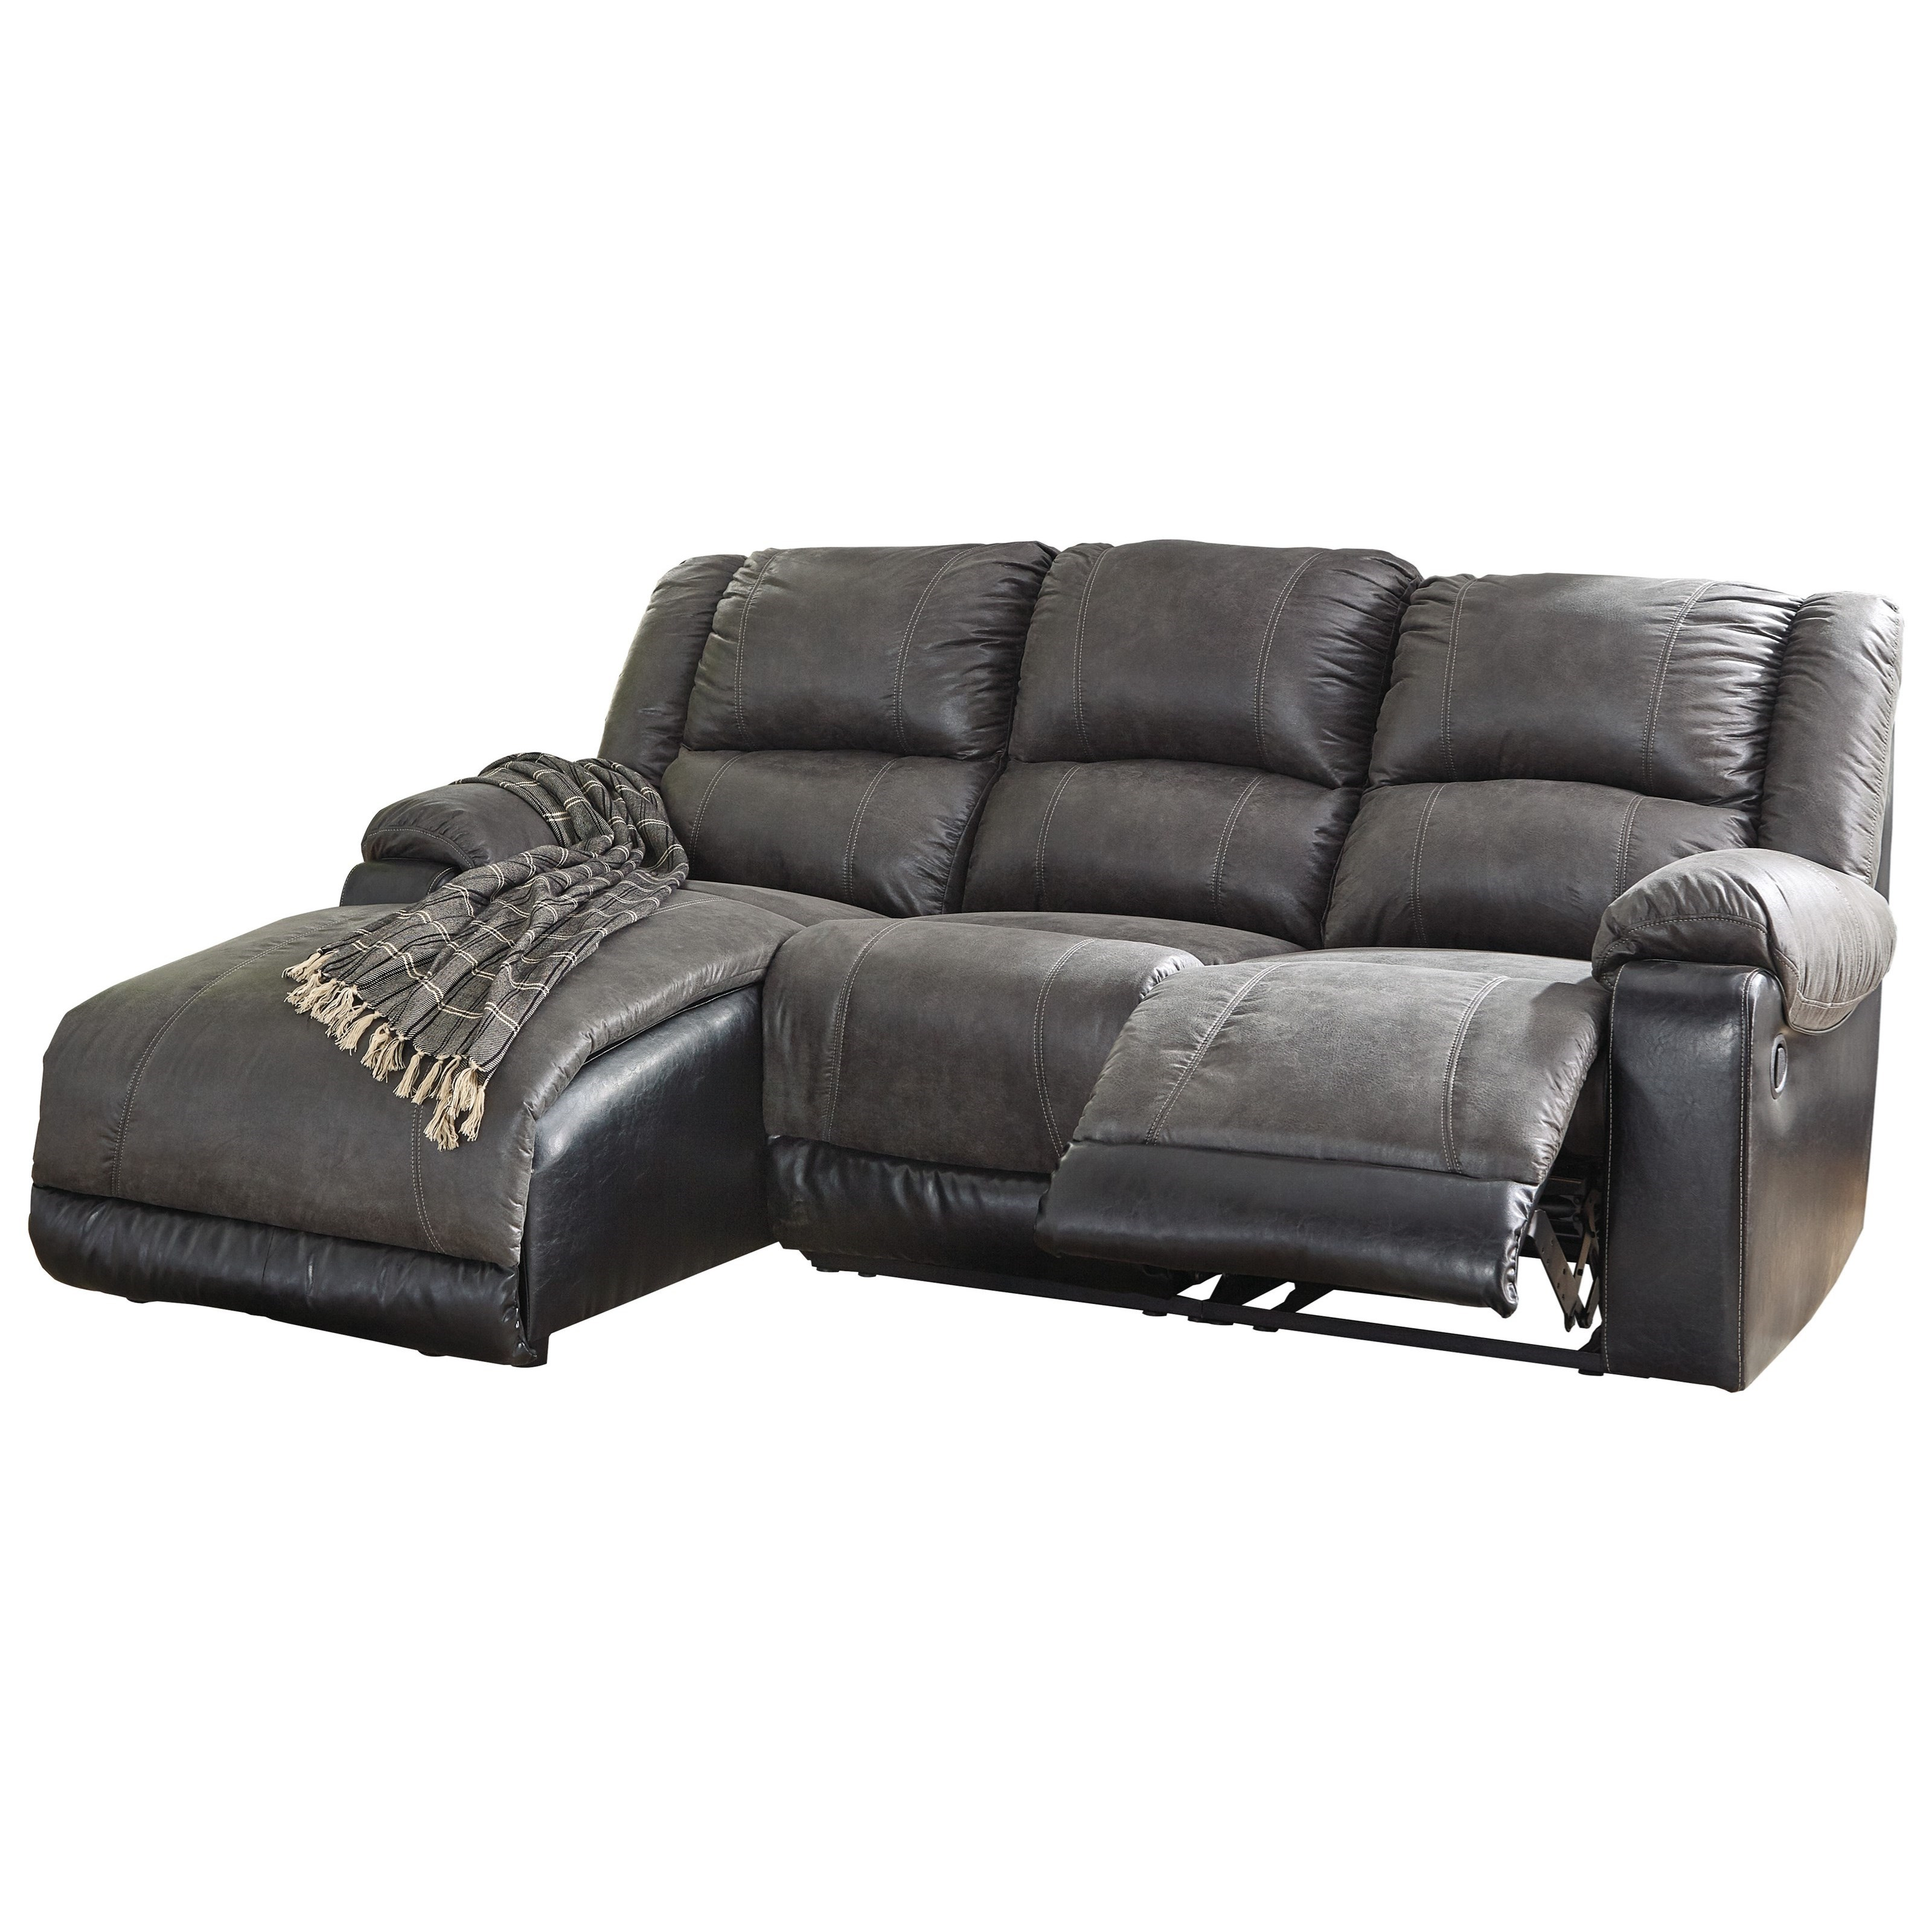 Nantahala Reclining Sofa with Chaise by Signature Design by Ashley at Northeast Factory Direct